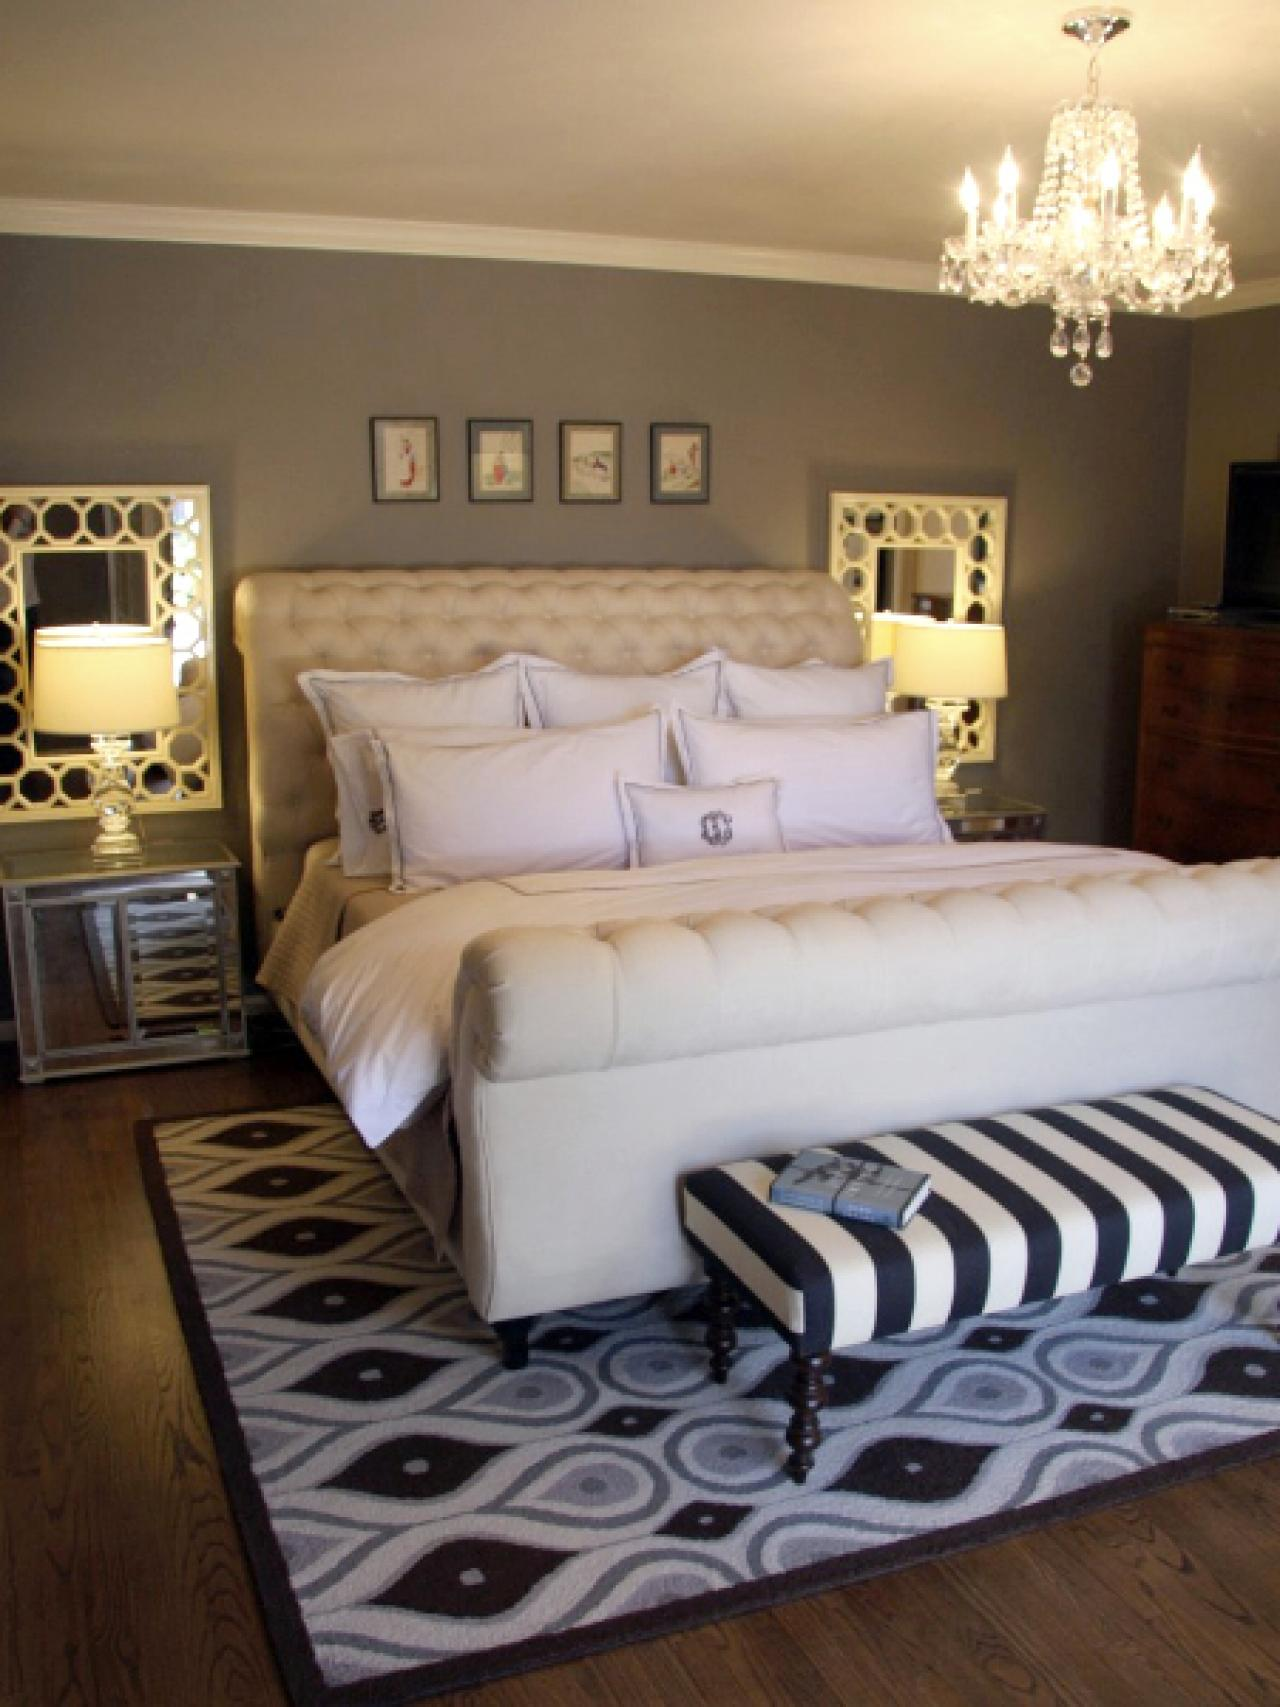 Bedroom Ideas Young Couple designing the bedroom as a couple | hgtv's decorating & design